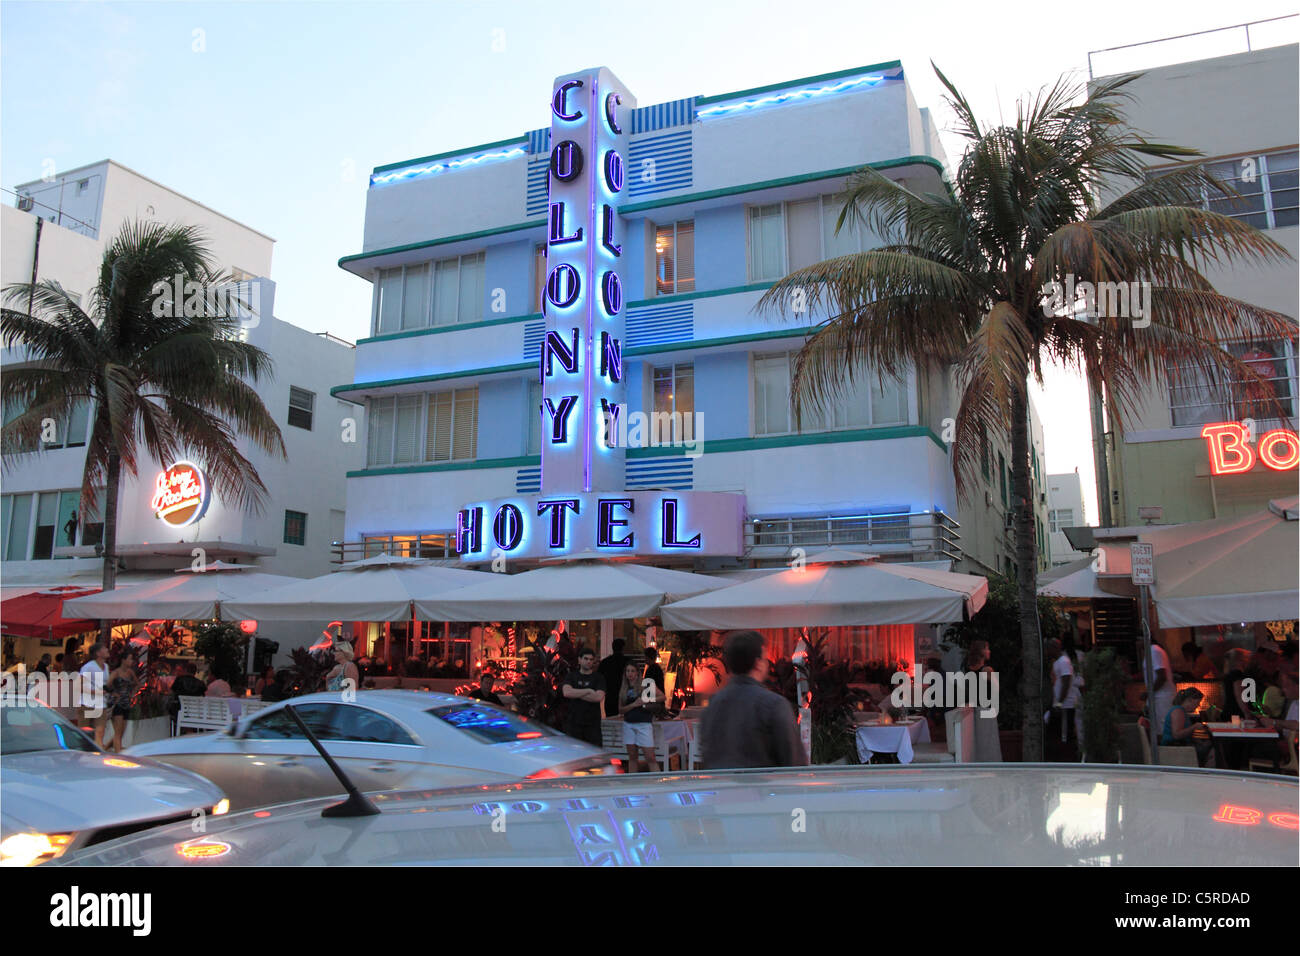 Colony Hotel, Ocean Drive, Miami South Beach, Gold Coast, Florida, United States of America, USA, North America - Stock Image